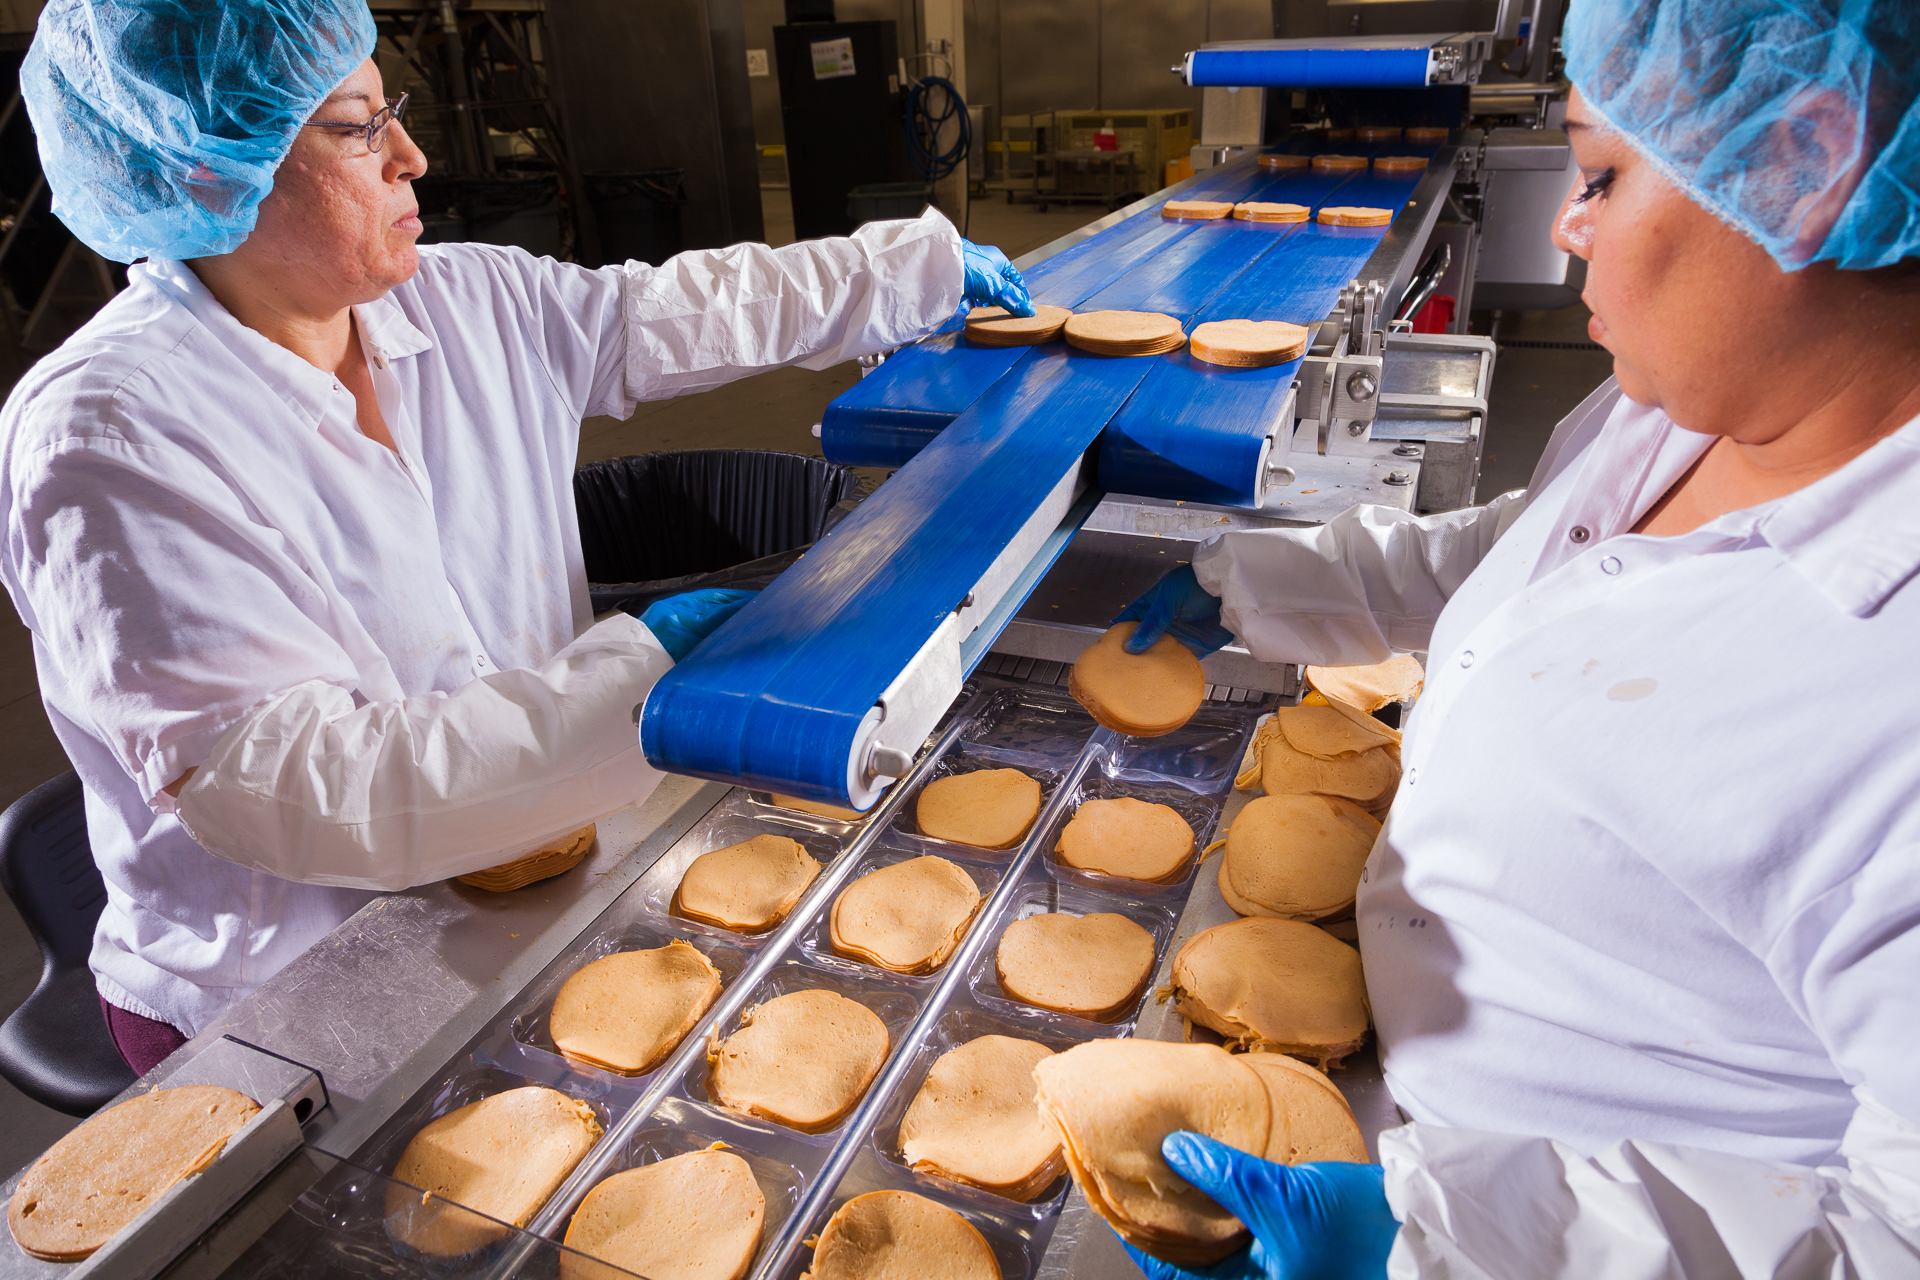 """Deli slices"" processing at Tofurky processing facility in Hood River, Oregon"